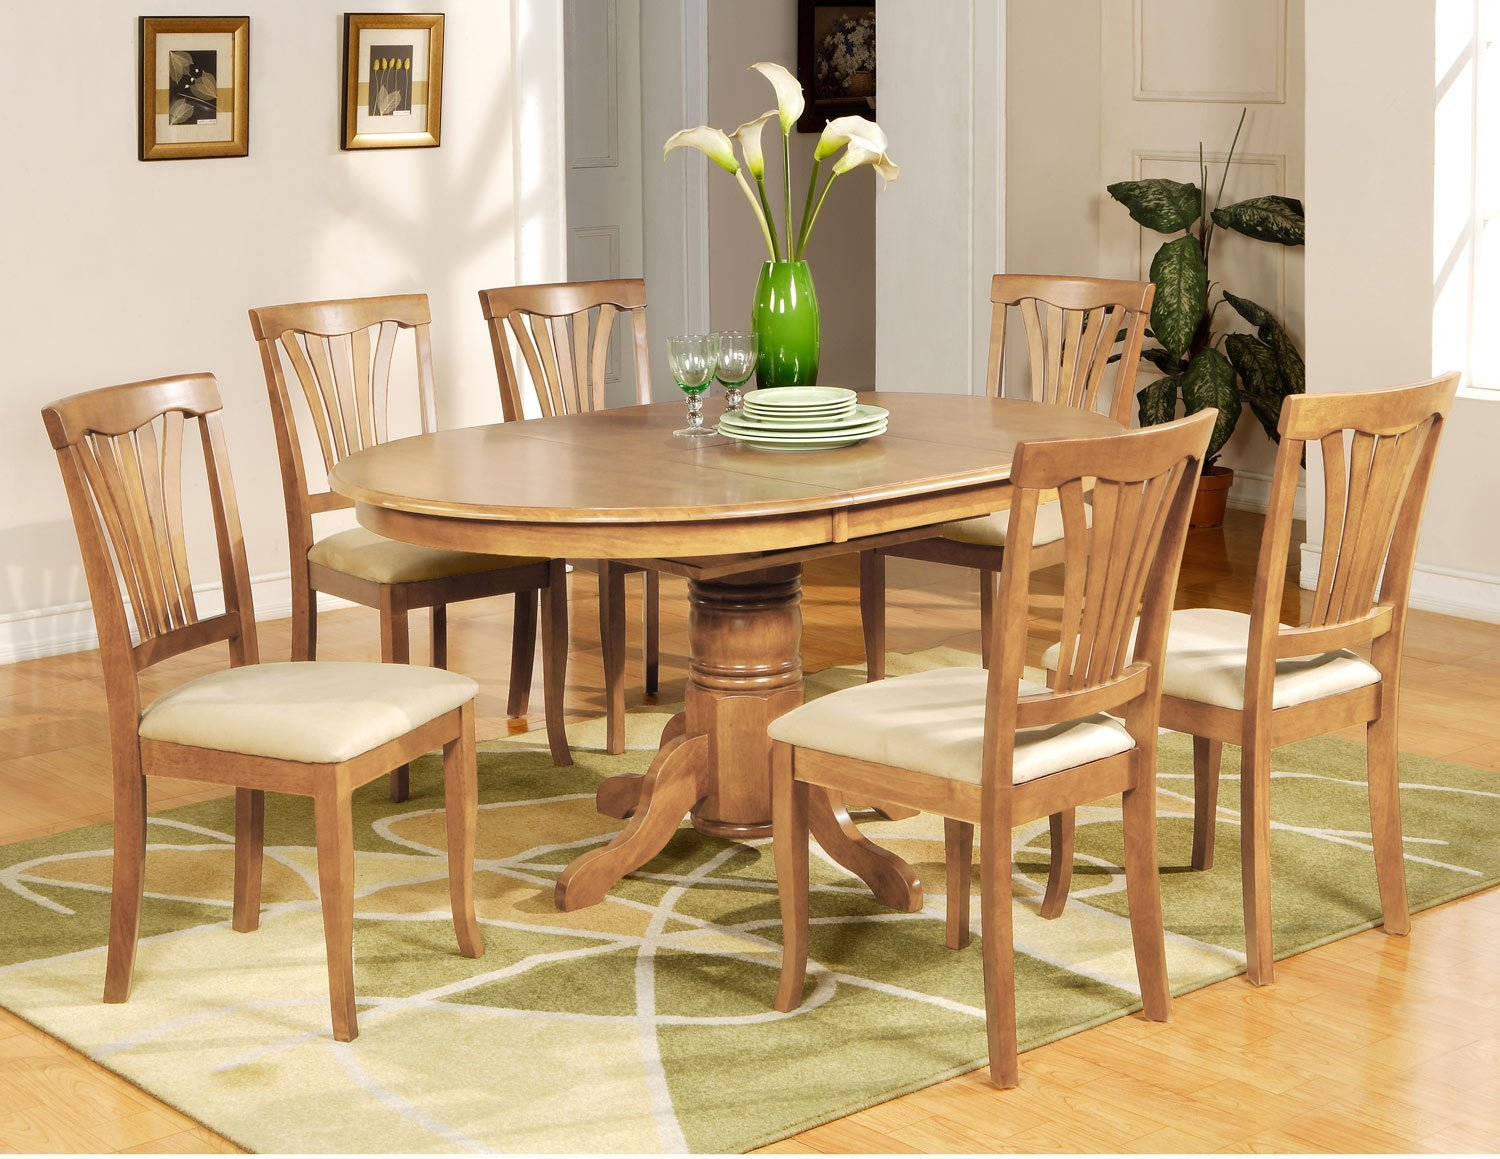 kitchen table and 6 chairs uk folding chair with umbrella holder 7 pc avon oval dining 43 microfiber upholstered